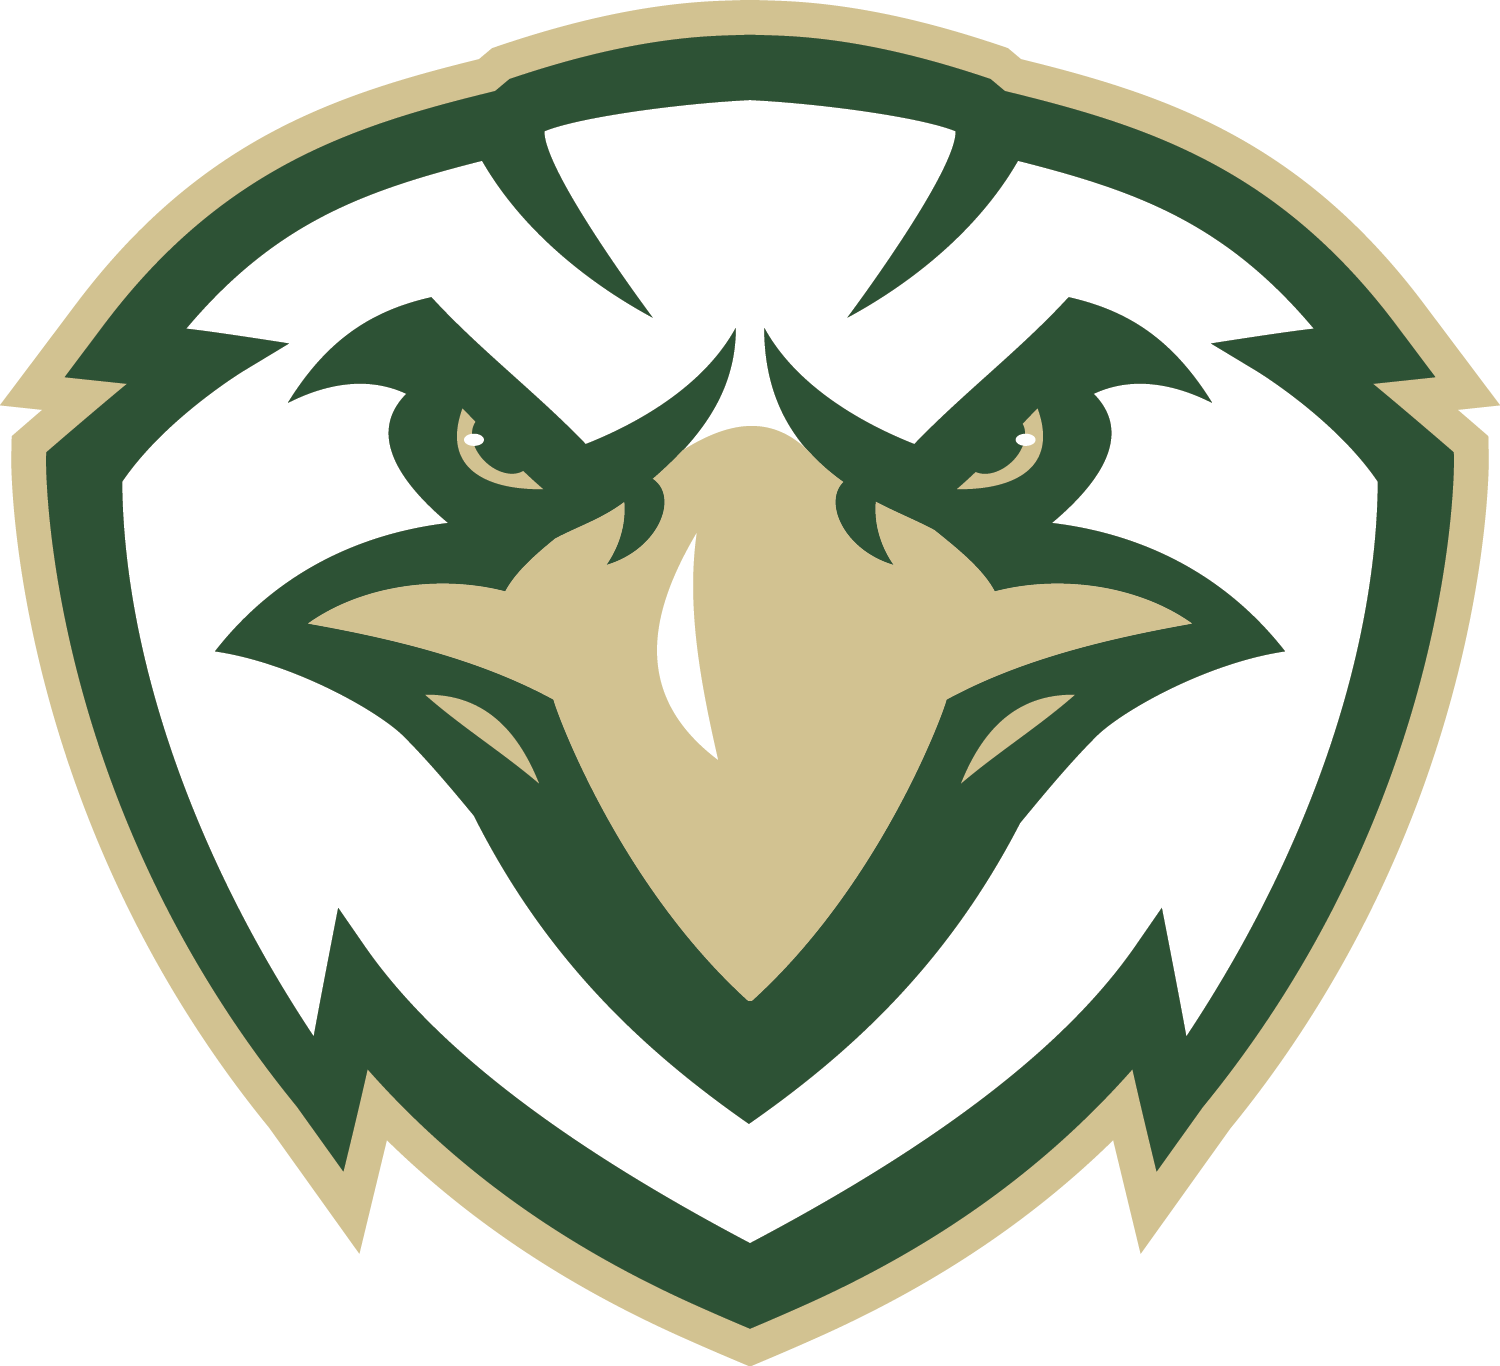 Eagle school mascot clipart. The glenoak golden eagles